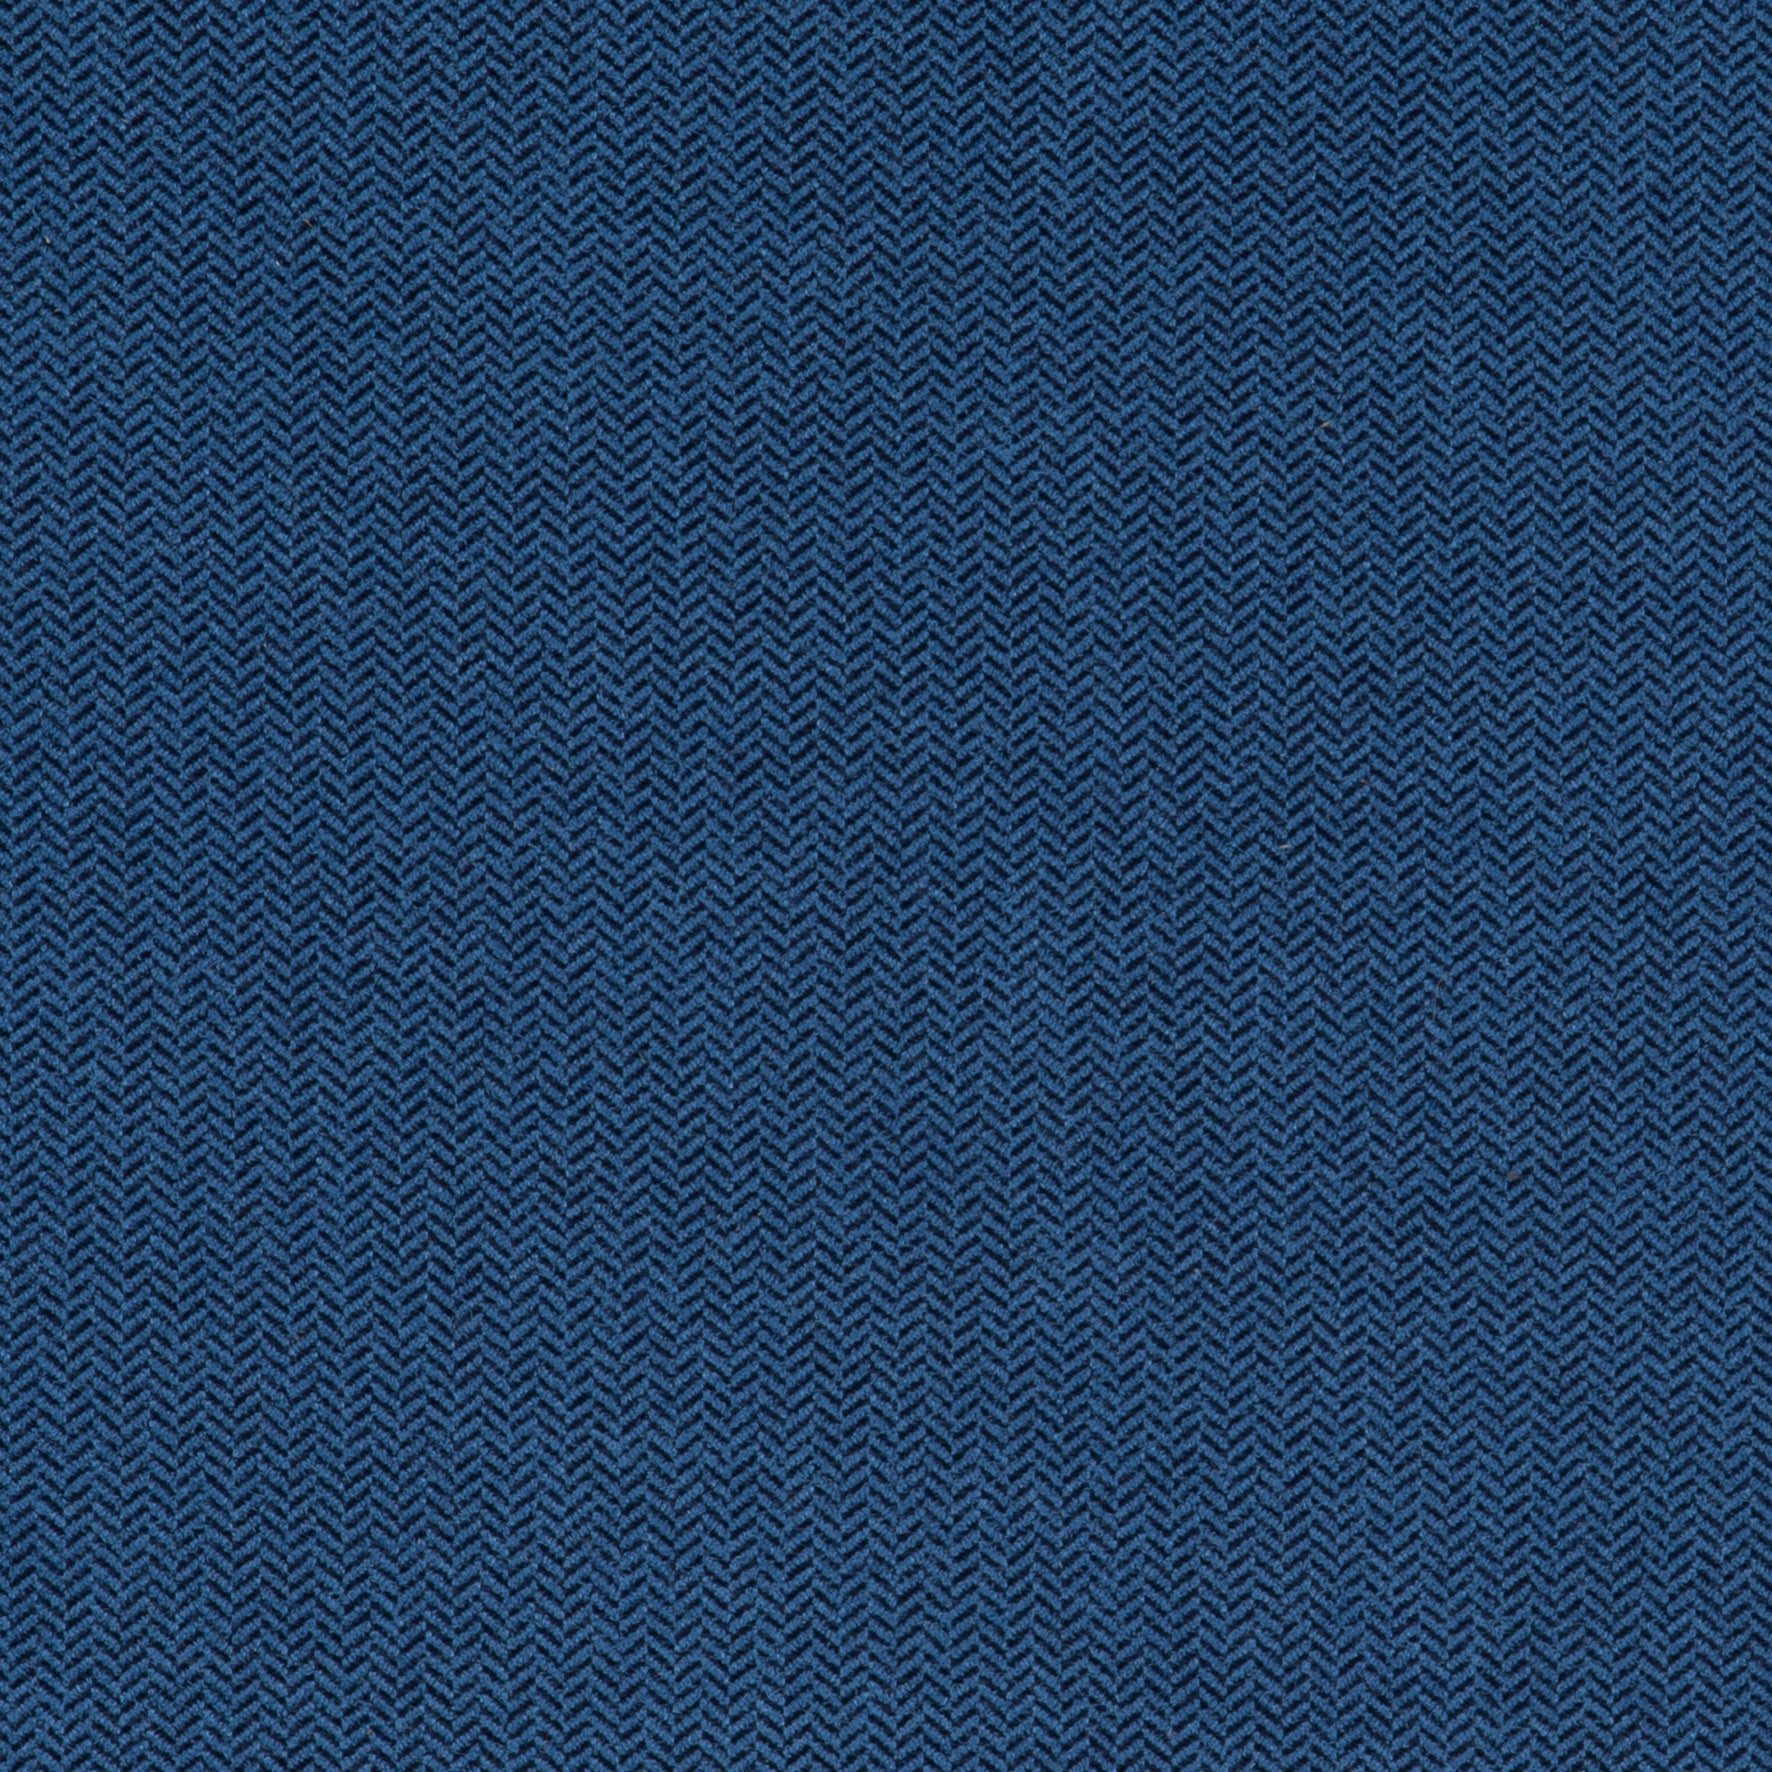 Nobel Bluebell waterproof fabric for dog beds